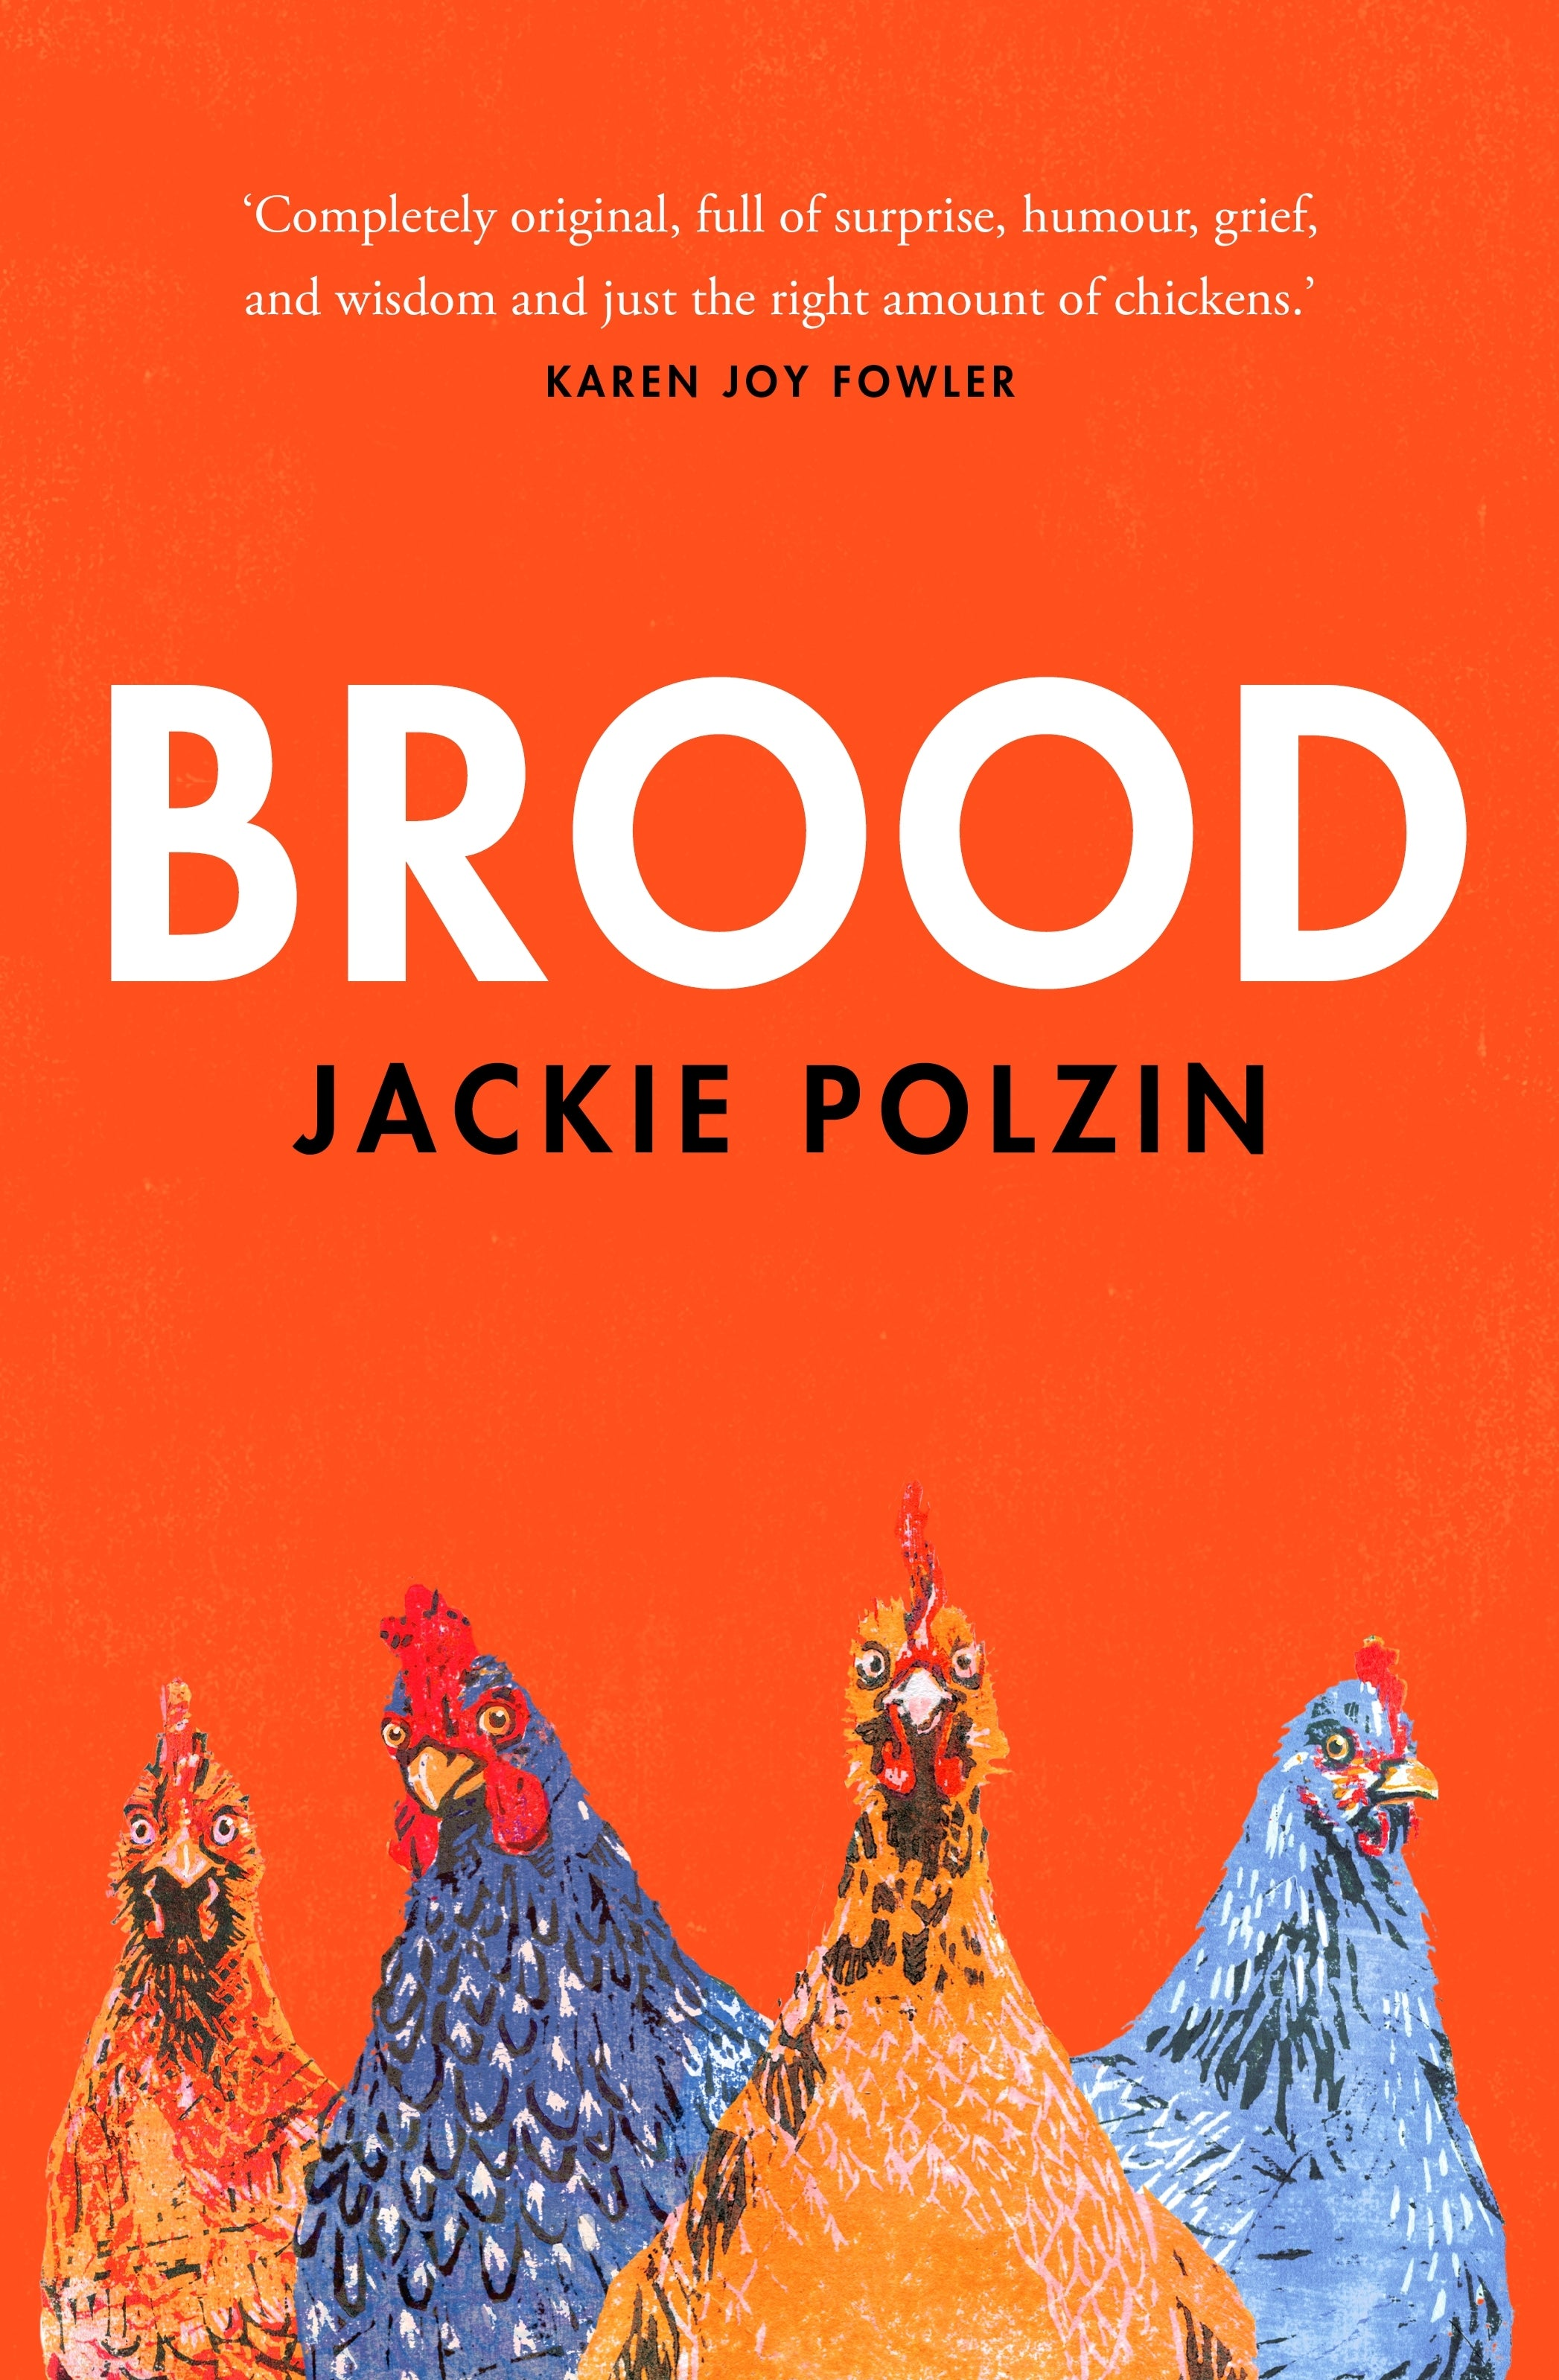 Brood by Jackie Polzin Trade Paperback $32.99